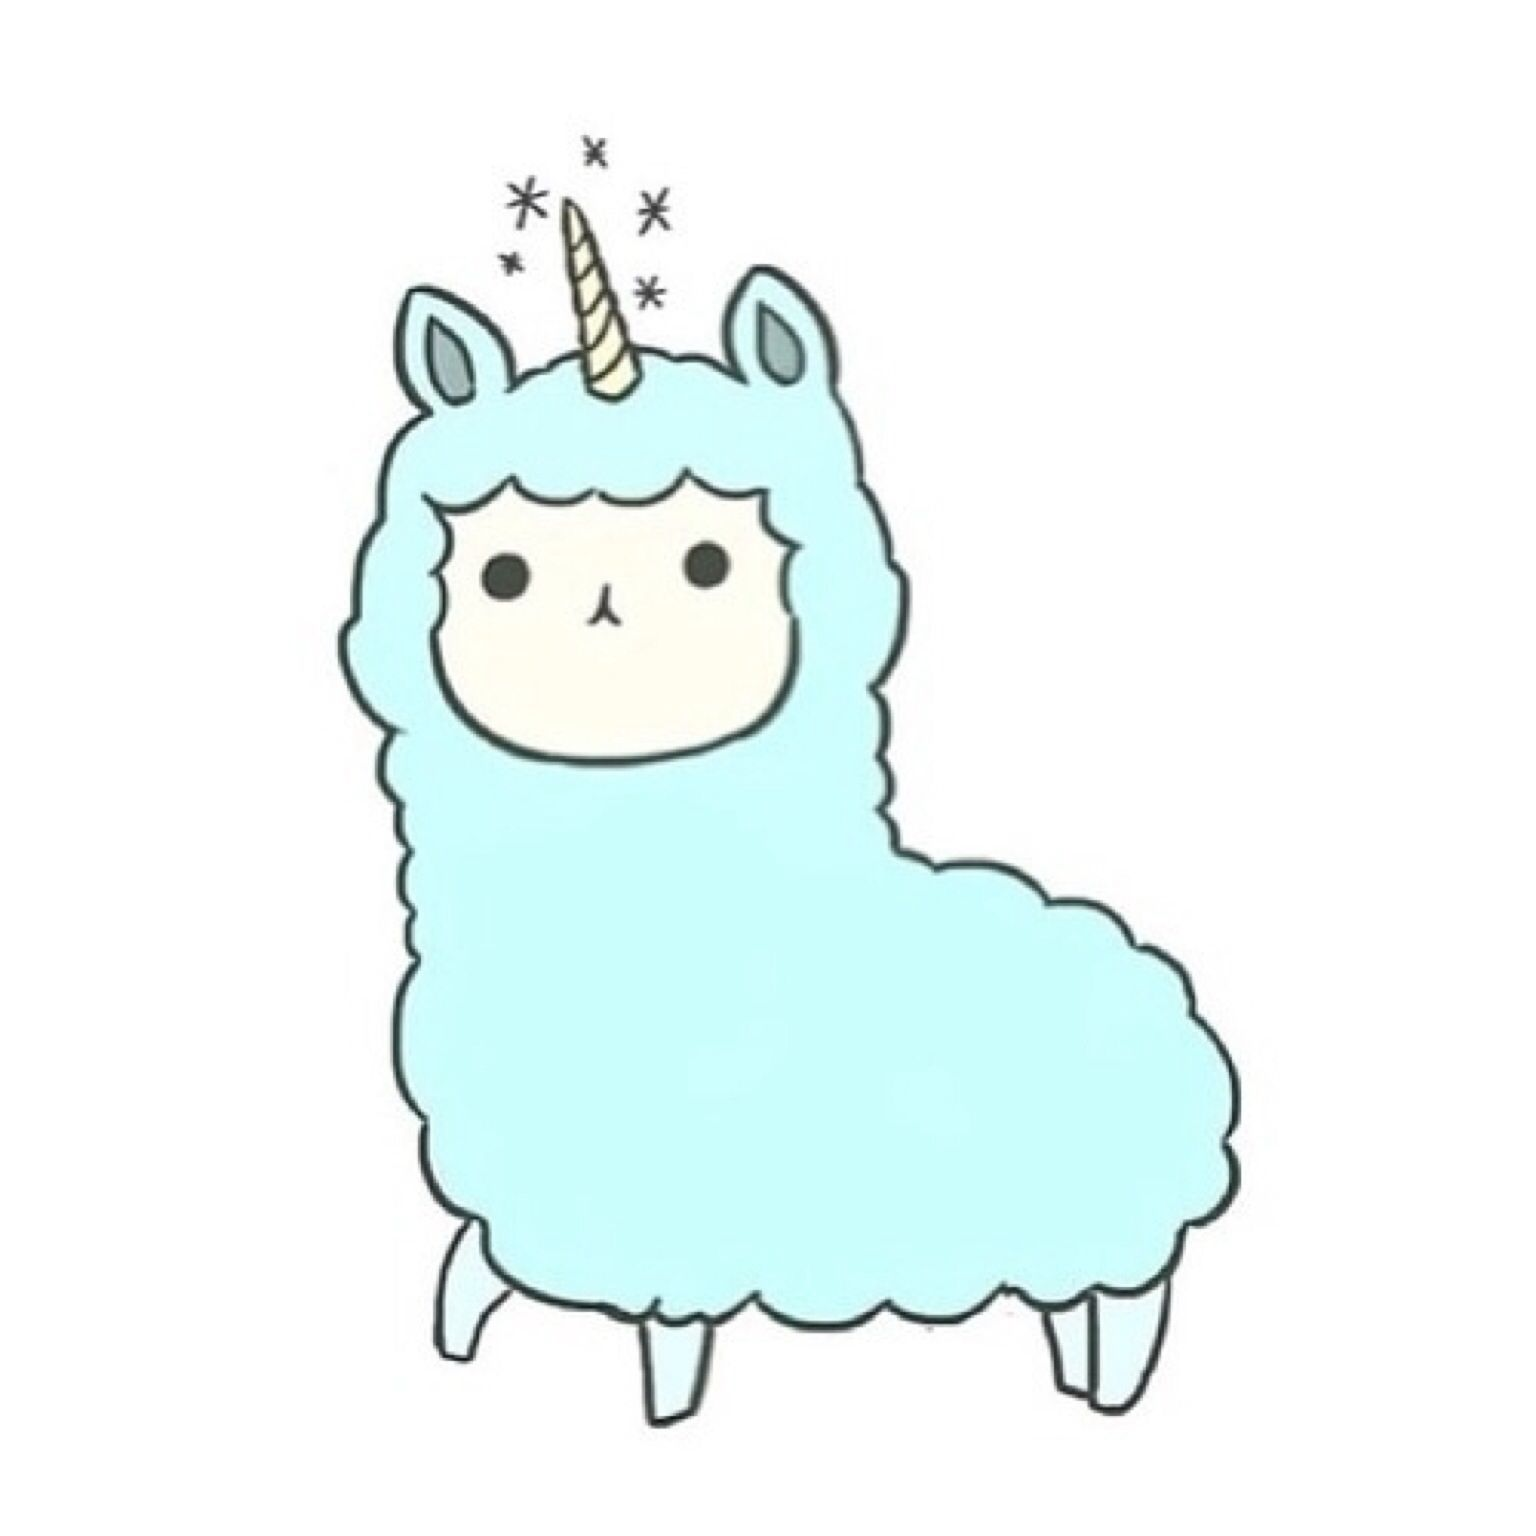 Cute Sheep Drawing Tumblr Llamacorn Kawaii Pinterest Unicorns Kawaii And Doodles